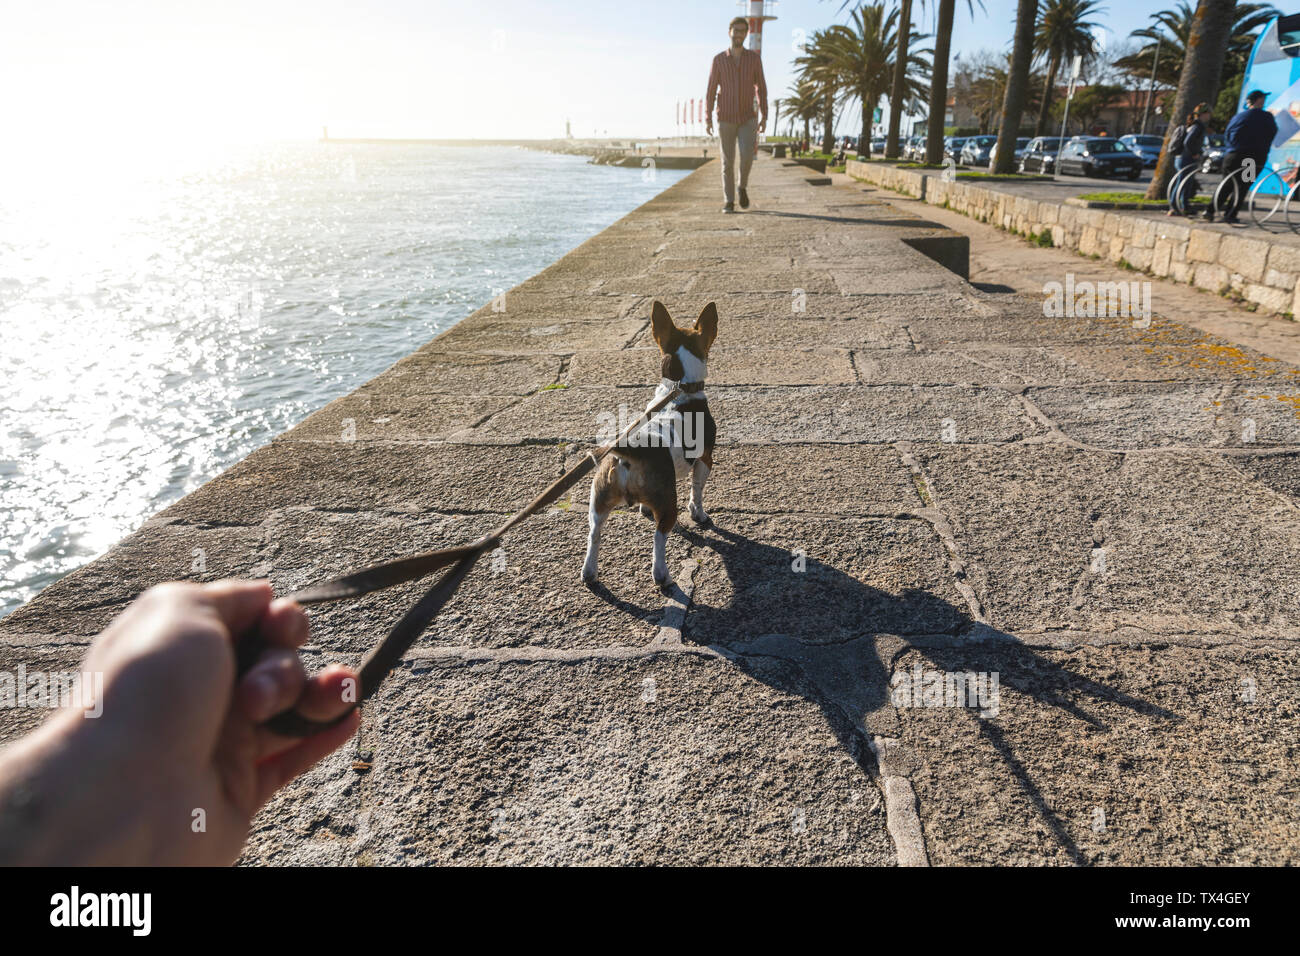 Portugal, Porto, man going walkies with dog on promenade - Stock Image